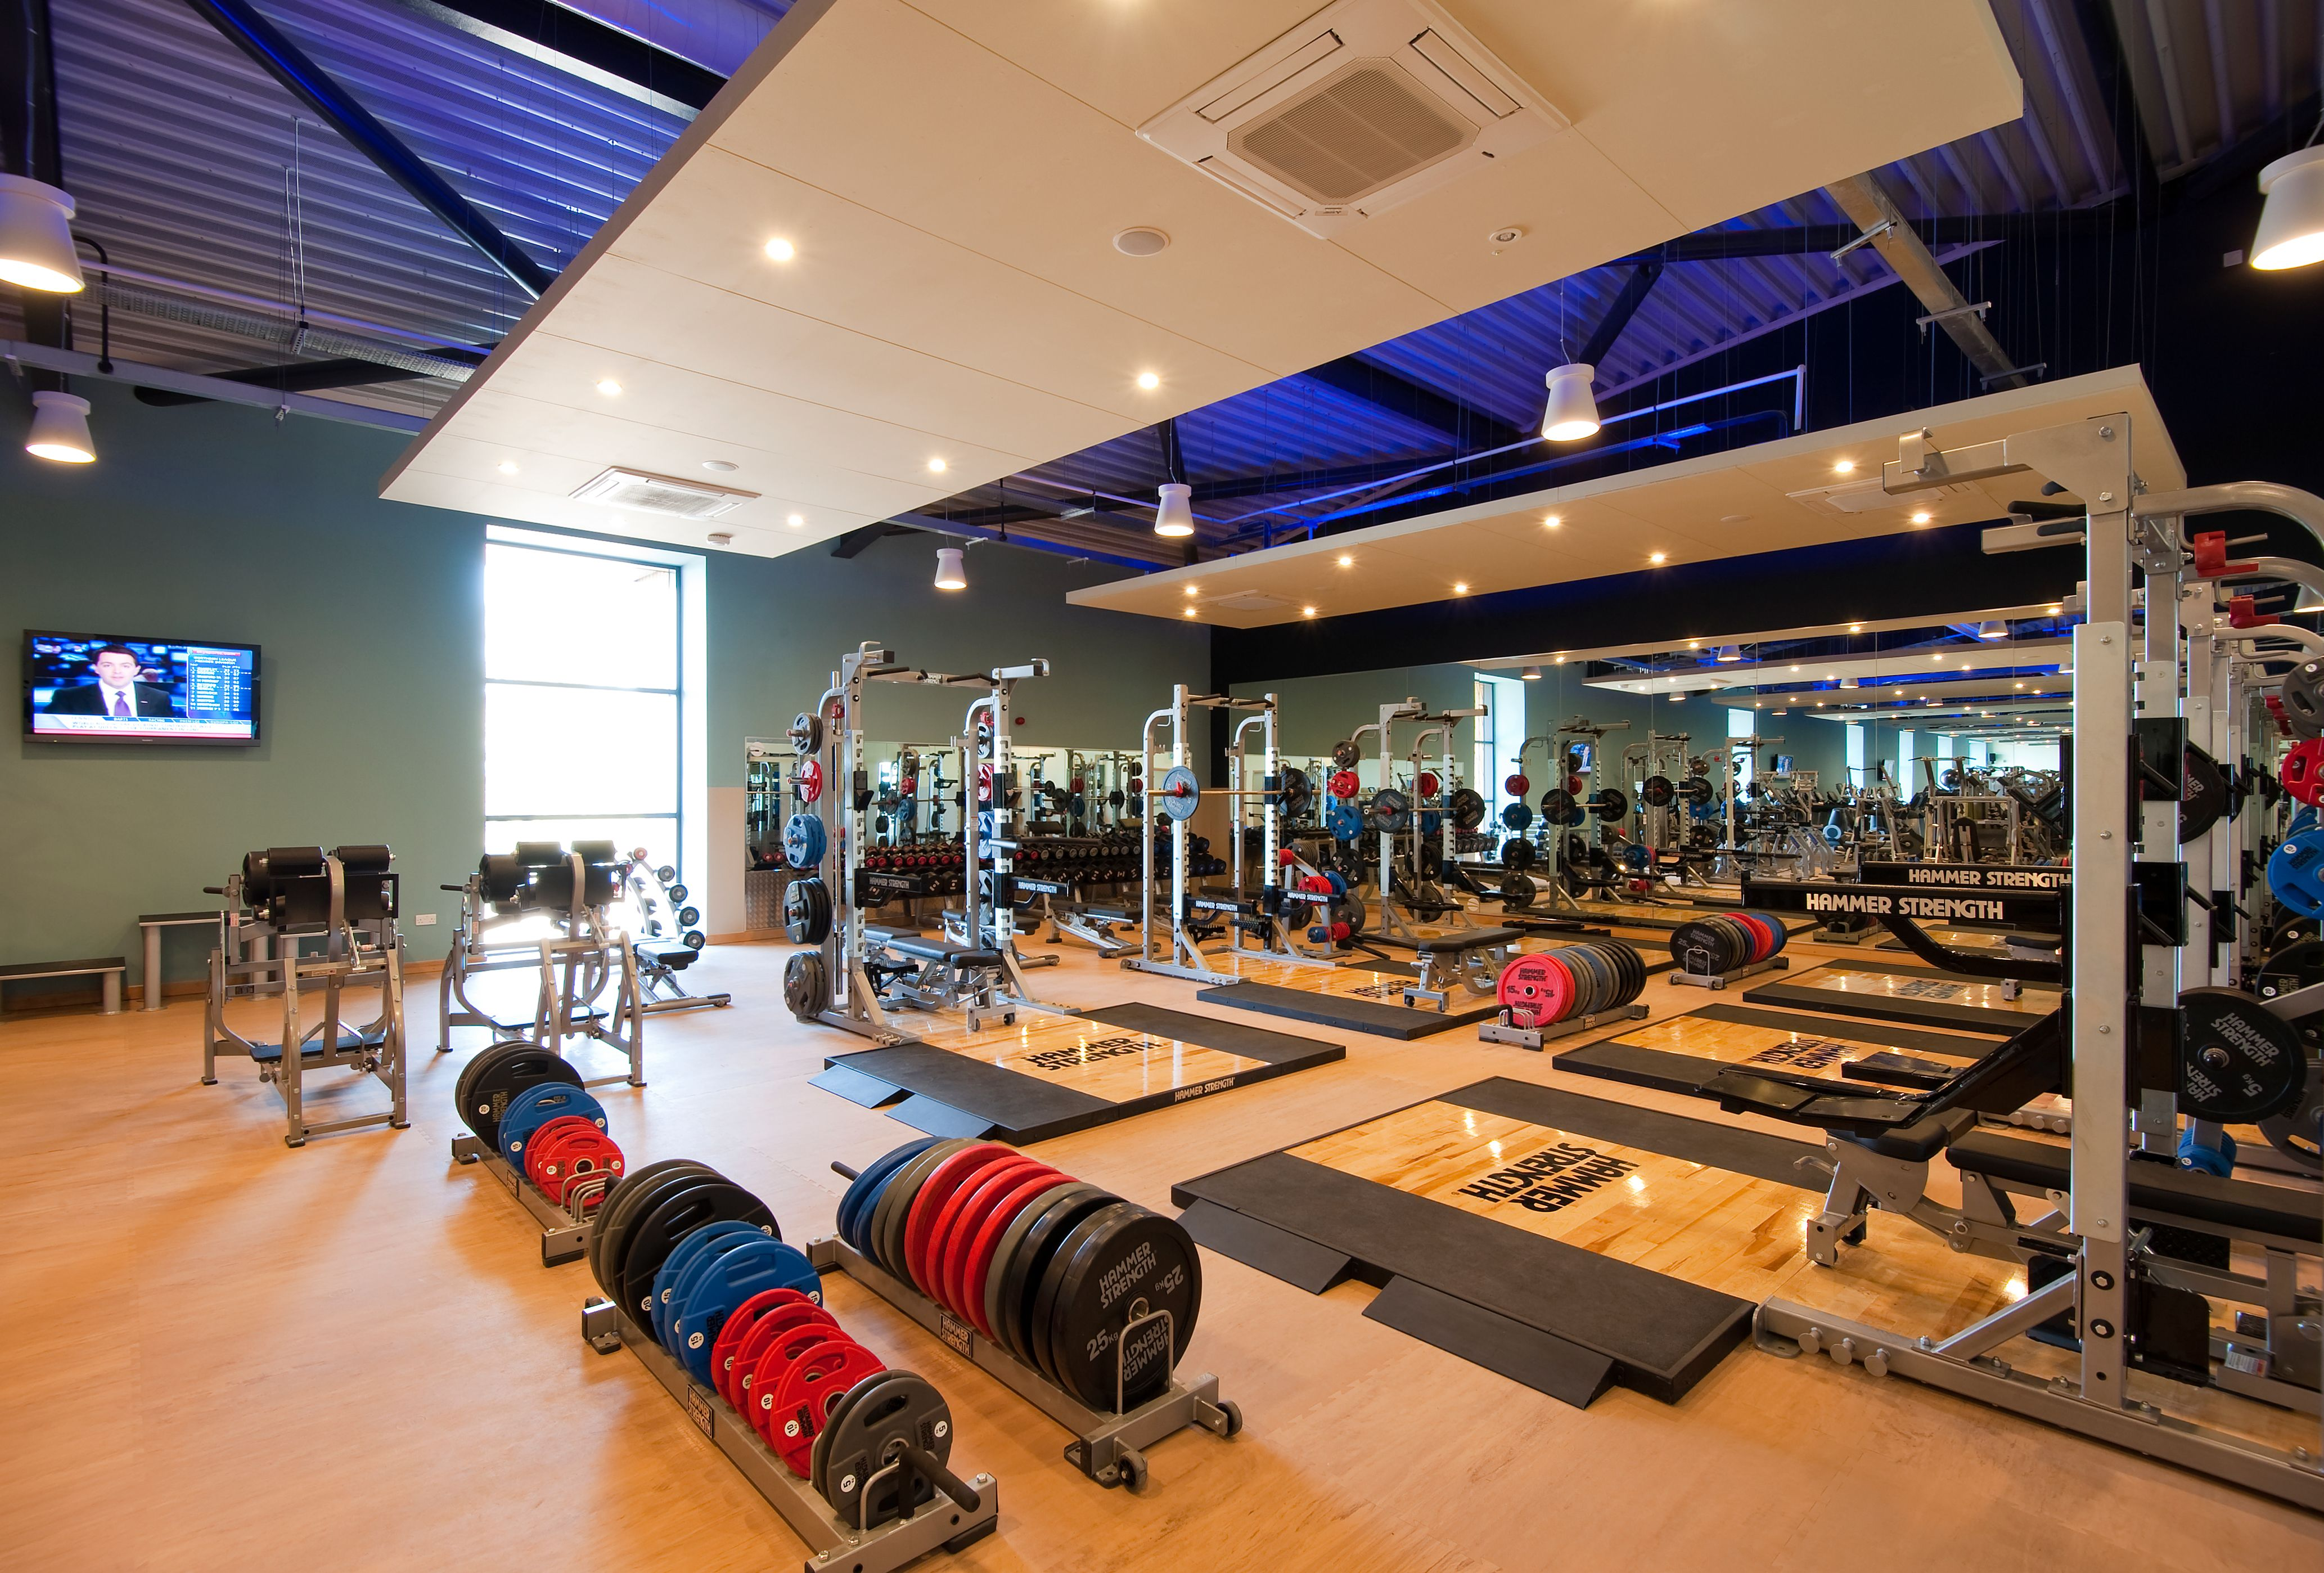 700sqm health and fitness centre offers a contemporary